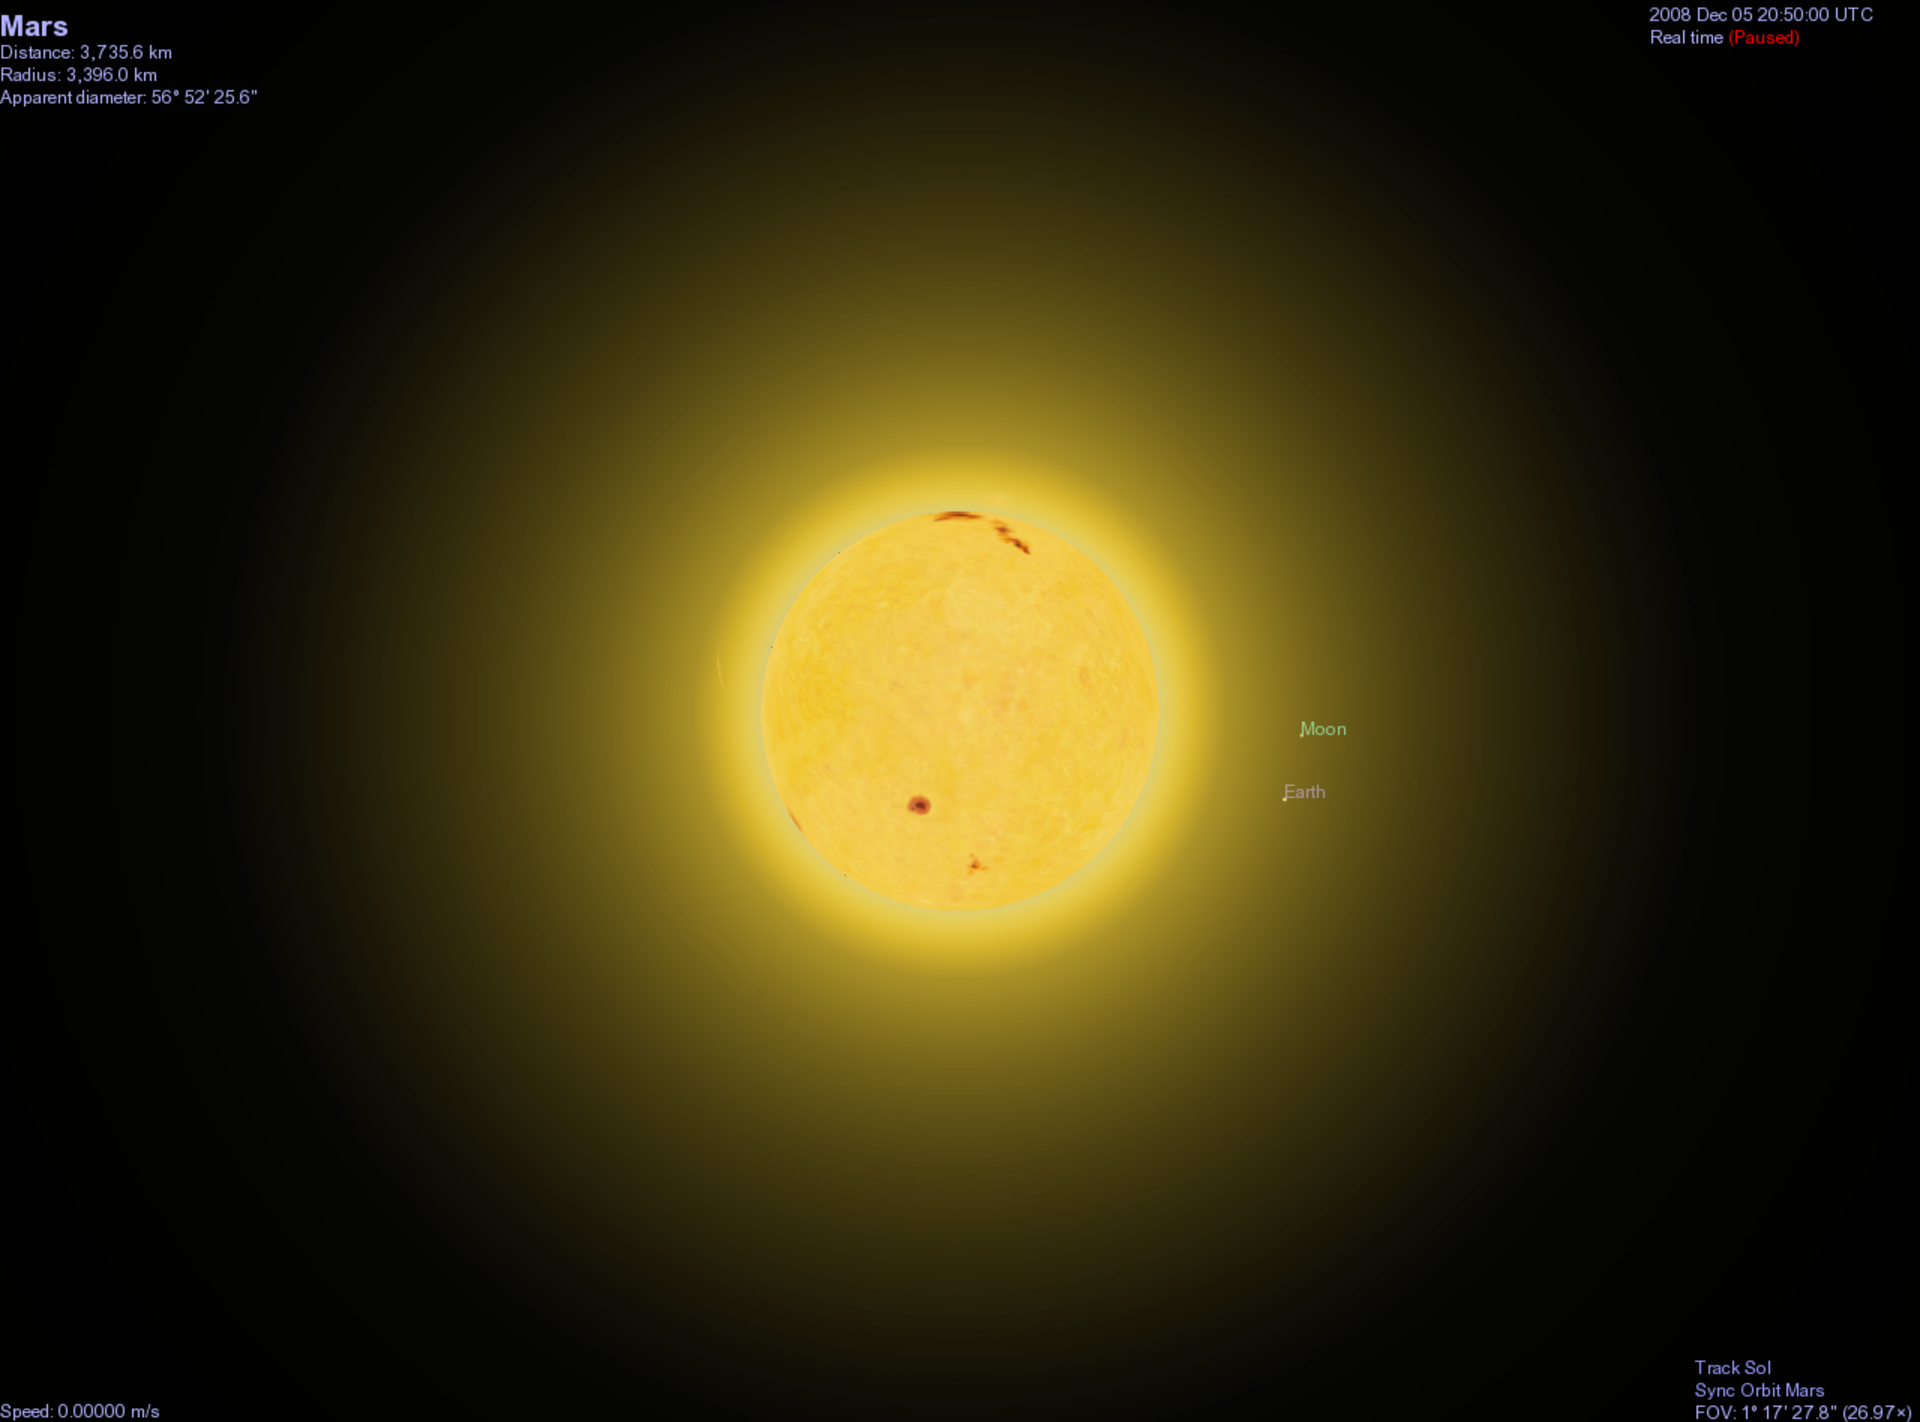 Generated view of Earth/Moon as seen from Mars - looking past the Sun